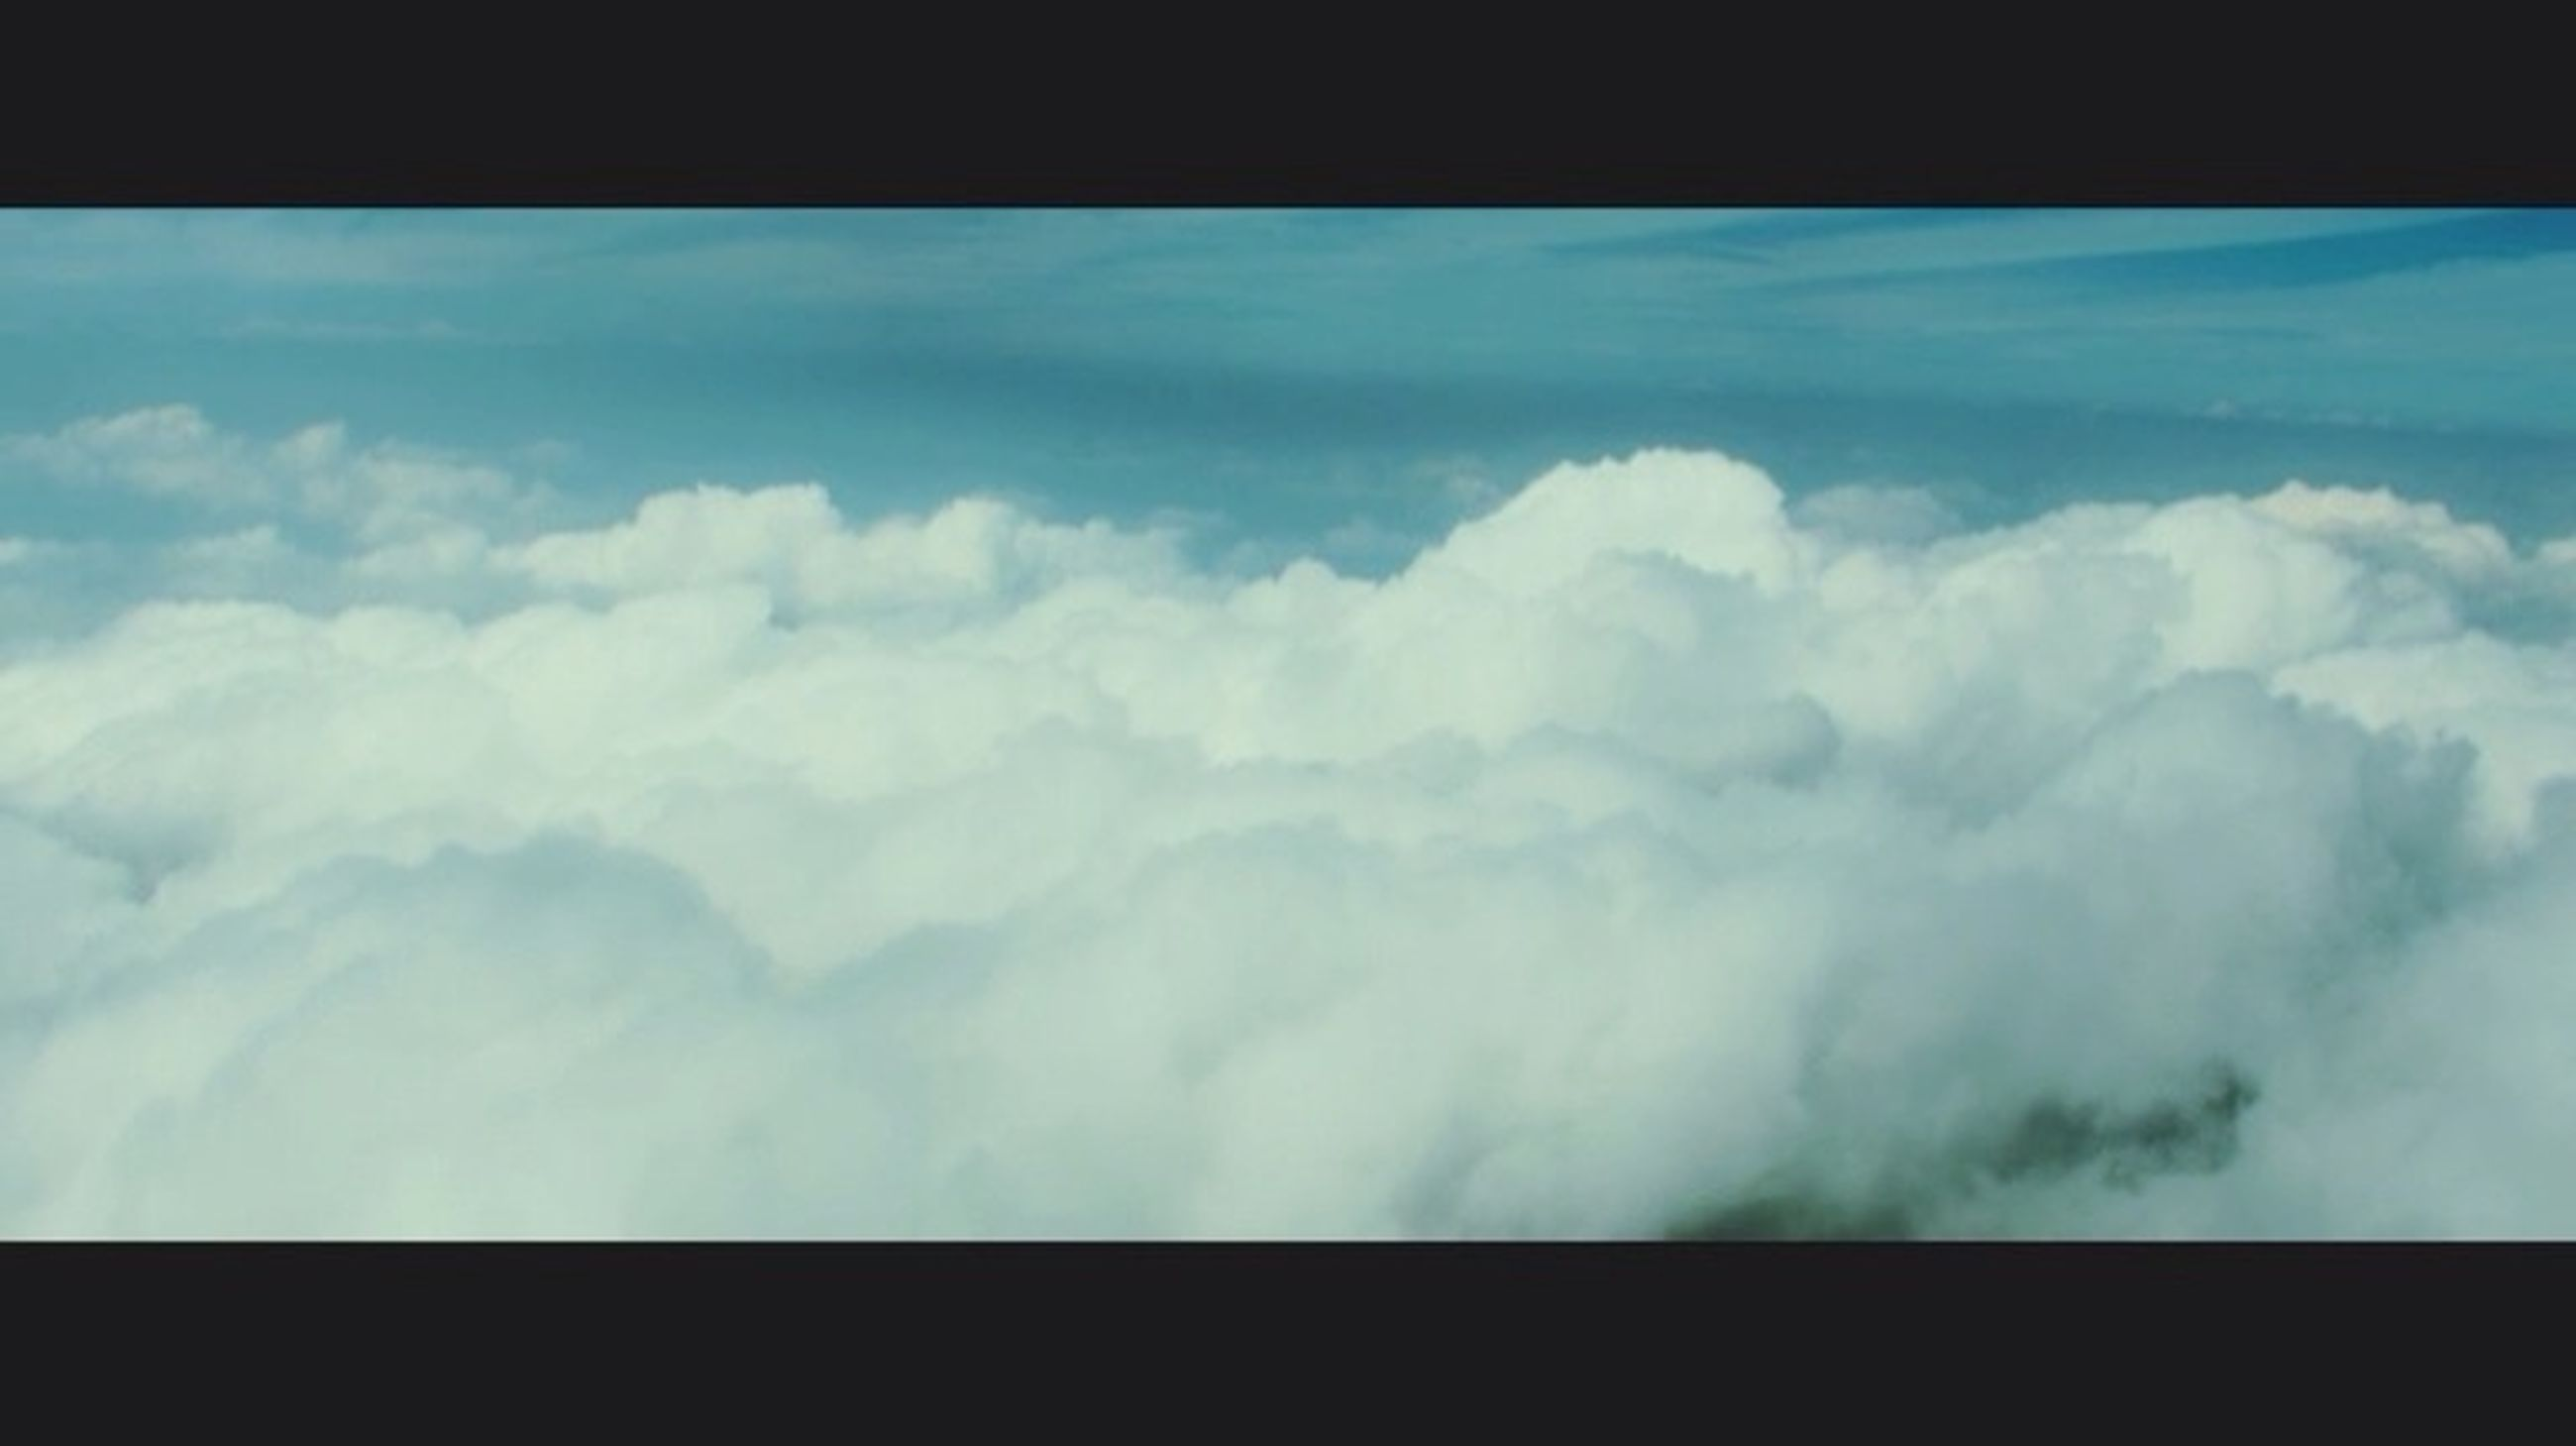 sky, cloud - sky, transfer print, cloud, scenics, beauty in nature, nature, cloudy, tranquil scene, tranquility, auto post production filter, blue, cloudscape, low angle view, idyllic, day, no people, outdoors, weather, window